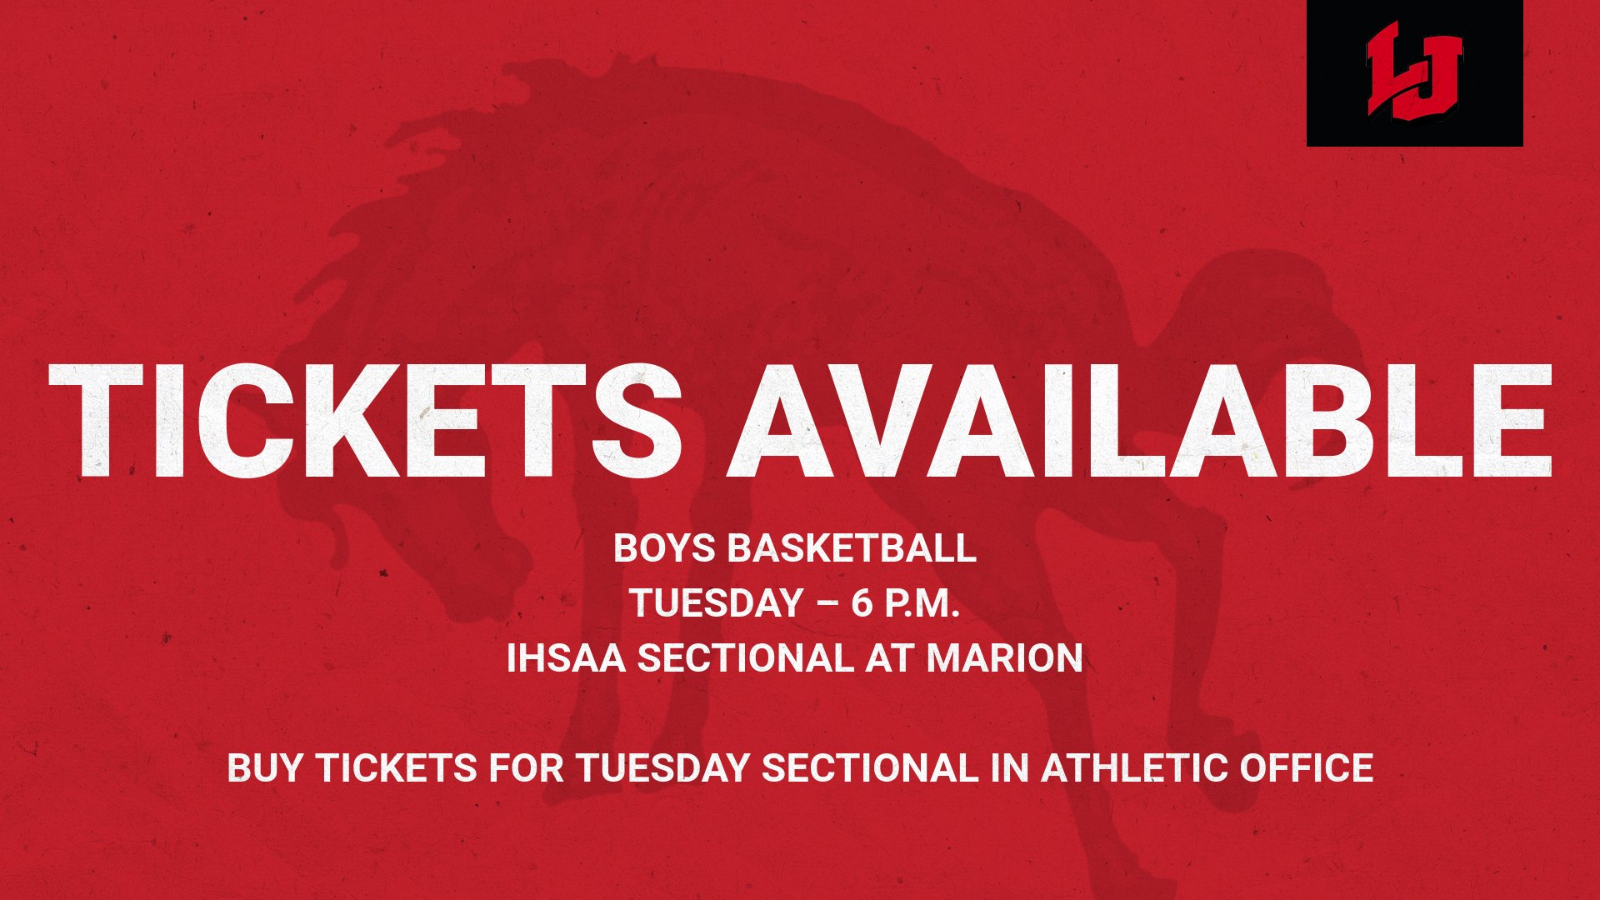 Tickets Available for Tuesday Sectional Game